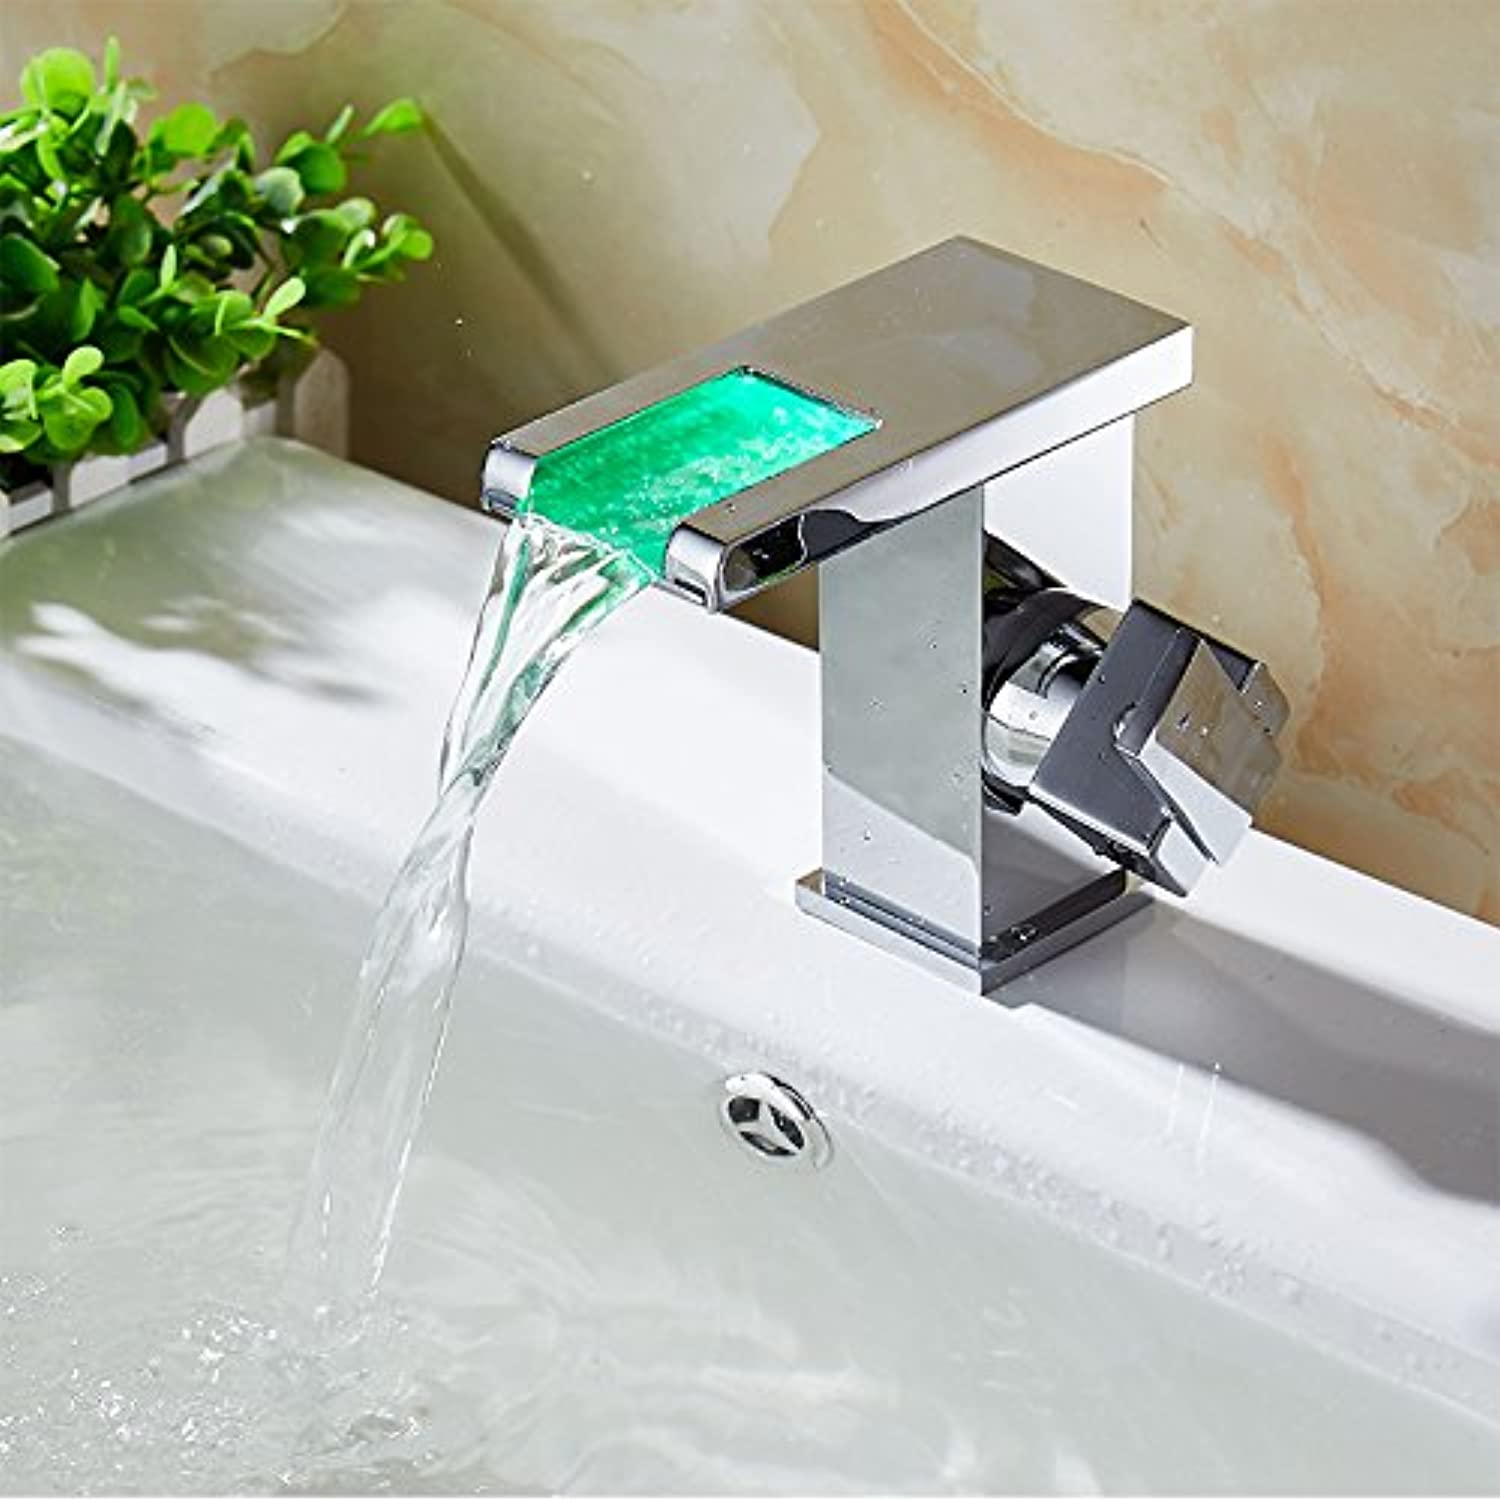 LSRHT Basin Taps Mixer Kitchen Sink Faucet Copper Hot and Cold Washbasin Toilet Waterfalls Led Bathroom accessories